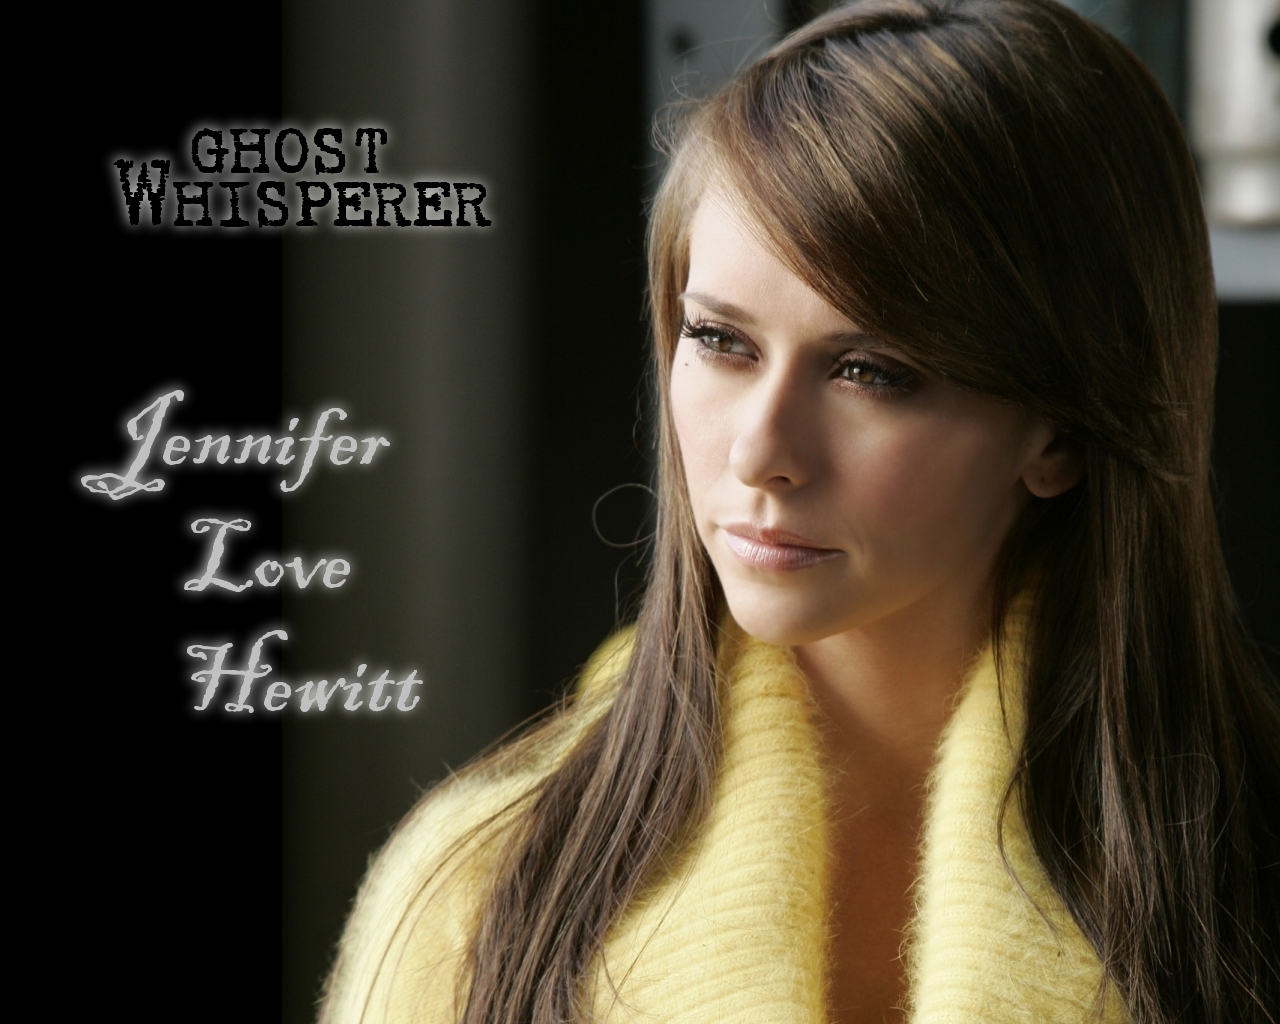 http://images1.fanpop.com/images/photos/1300000/GW-wallpaper-ghost-whisperer-1364572-1280-1024.jpg